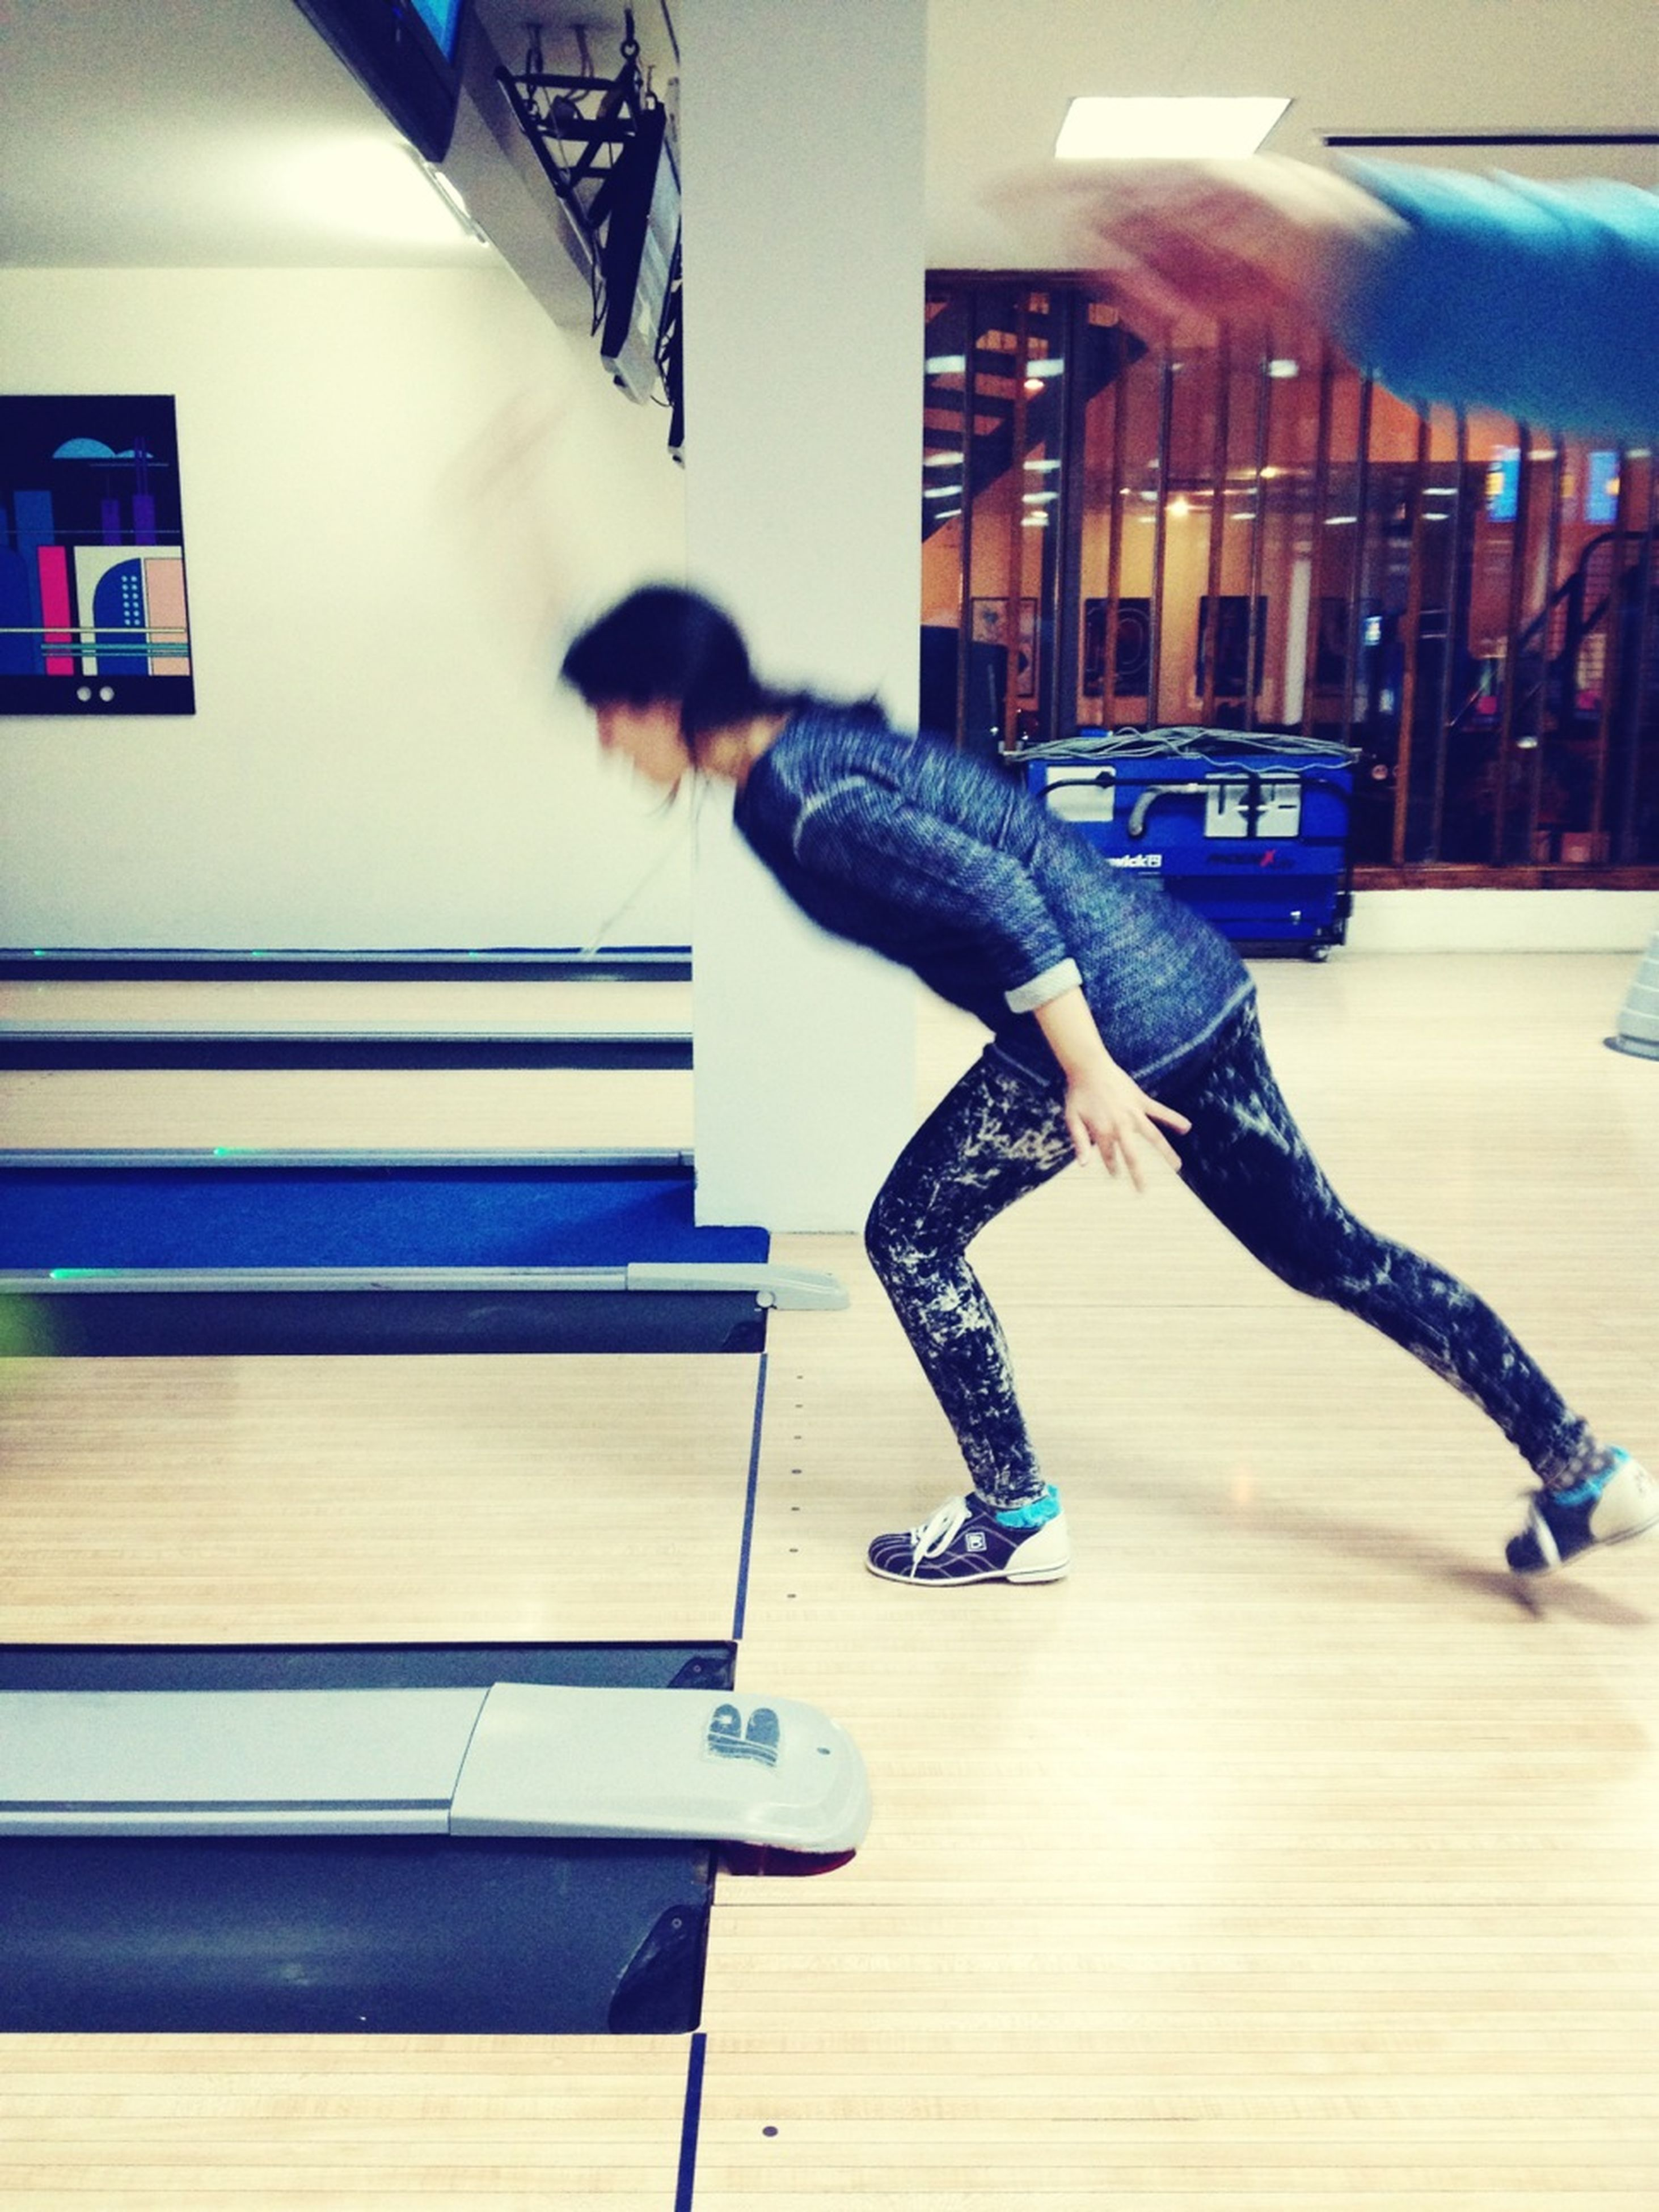 indoors, full length, lifestyles, leisure activity, playing, childhood, skill, casual clothing, side view, sitting, boys, music, hobbies, balance, arts culture and entertainment, fun, technology, blue